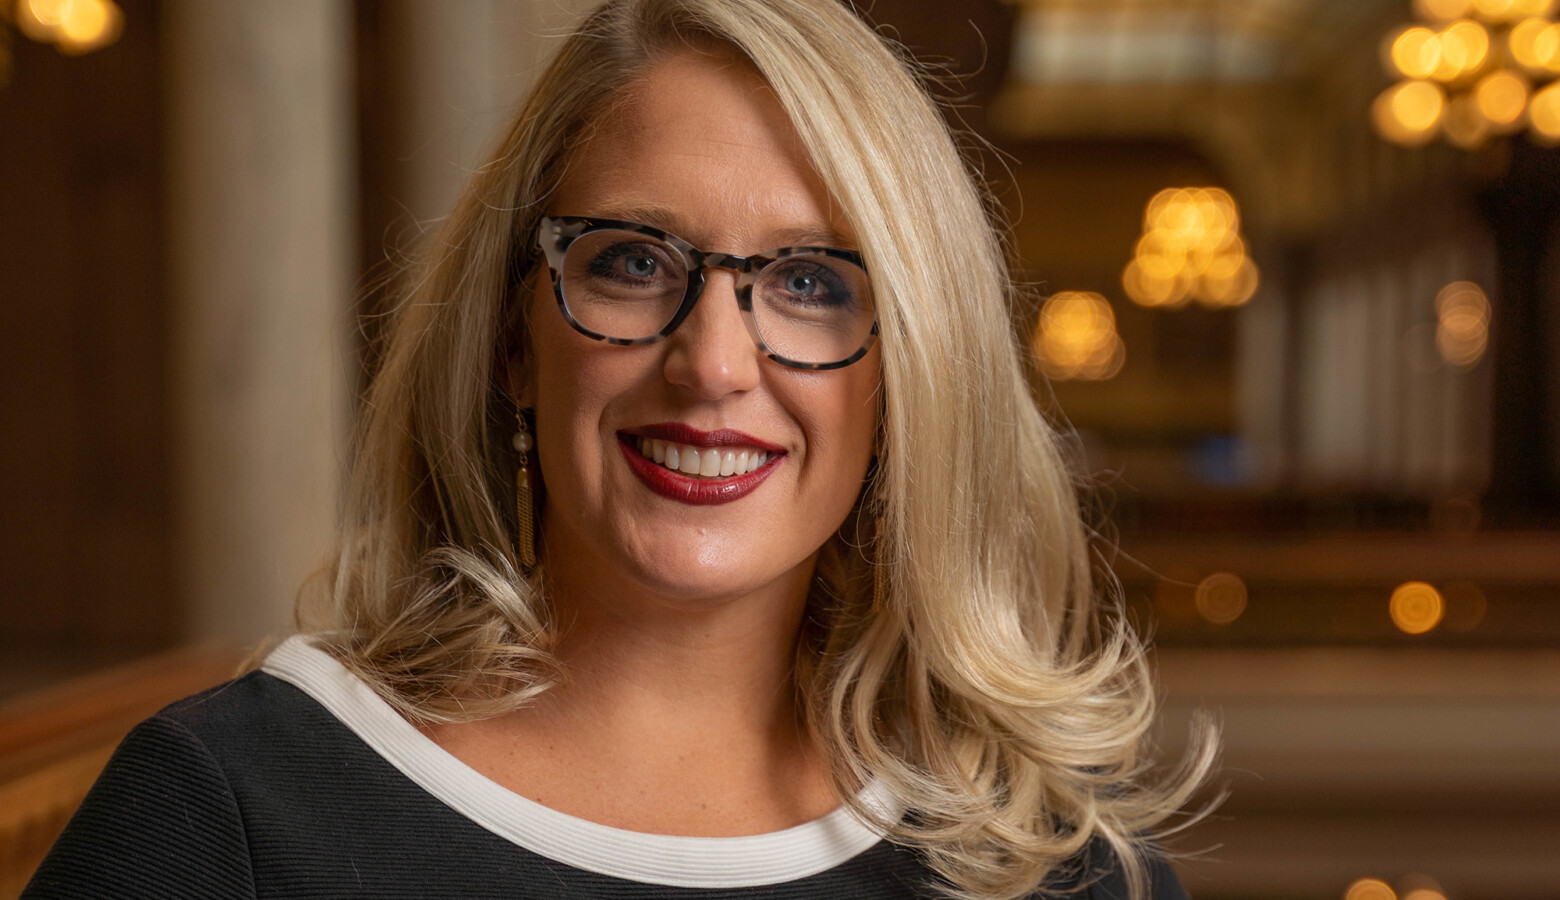 Gov. Eric Holcomb will appoint Katie Jenner as Indiana's first-ever appointed education secretary. (Courtesy of Governor Holcomb's office)